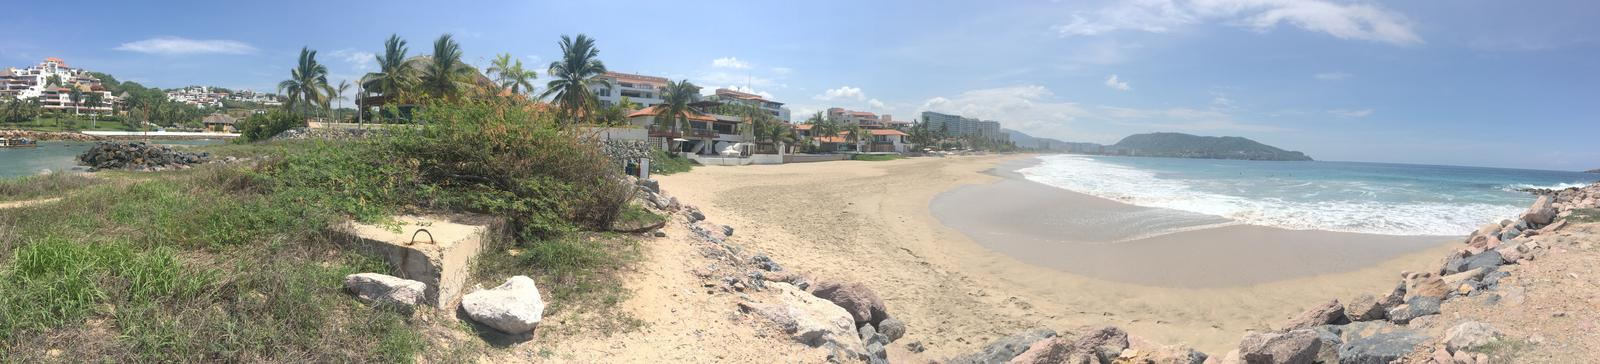 Photo de Ixtapa-Zihuatanejo